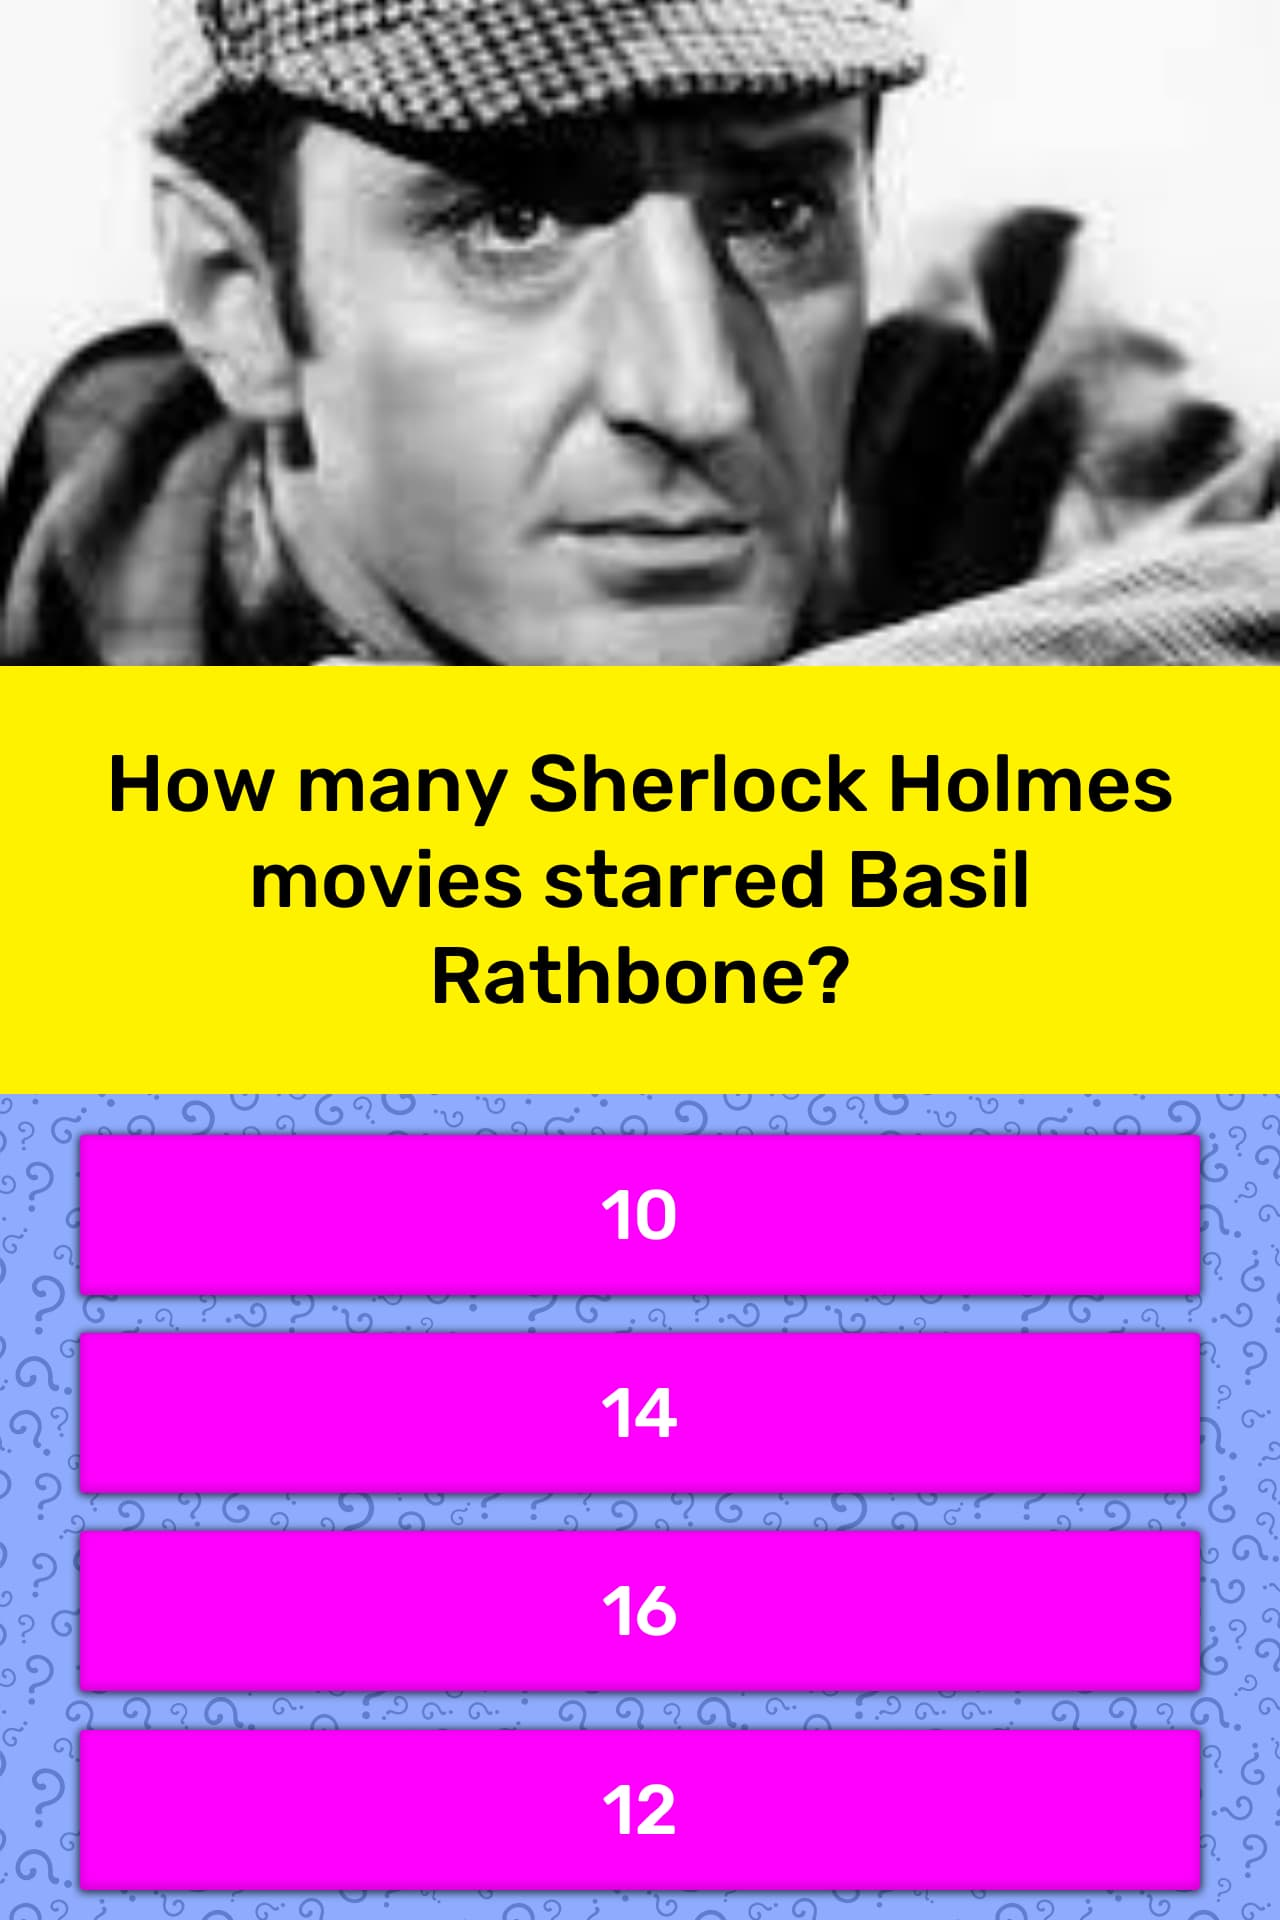 How many Sherlock Holmes movies    | Trivia Answers | QuizzClub